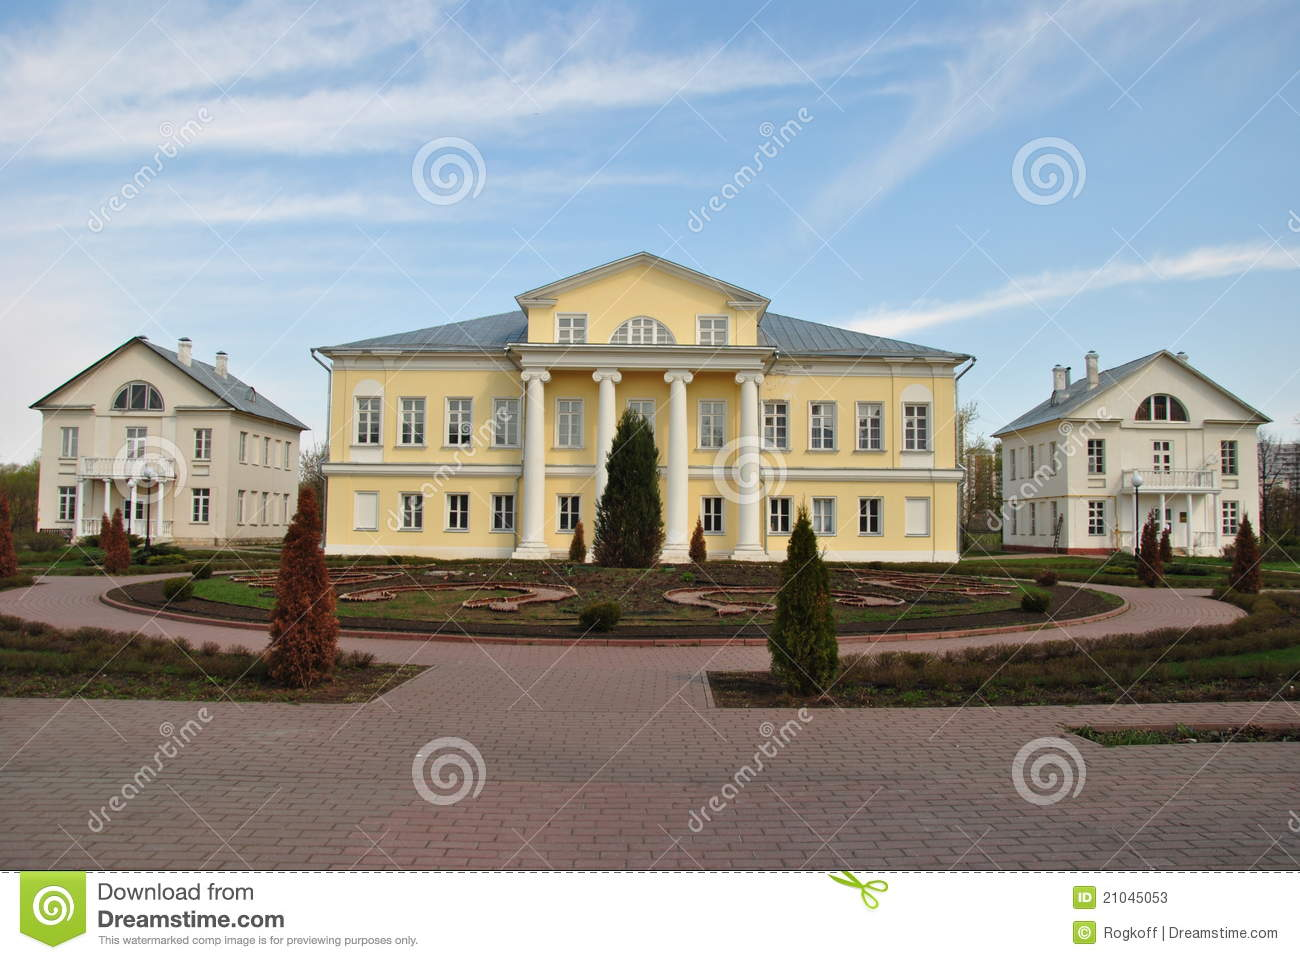 Manor Sviblovo in Moscow: description, history and interesting facts 89